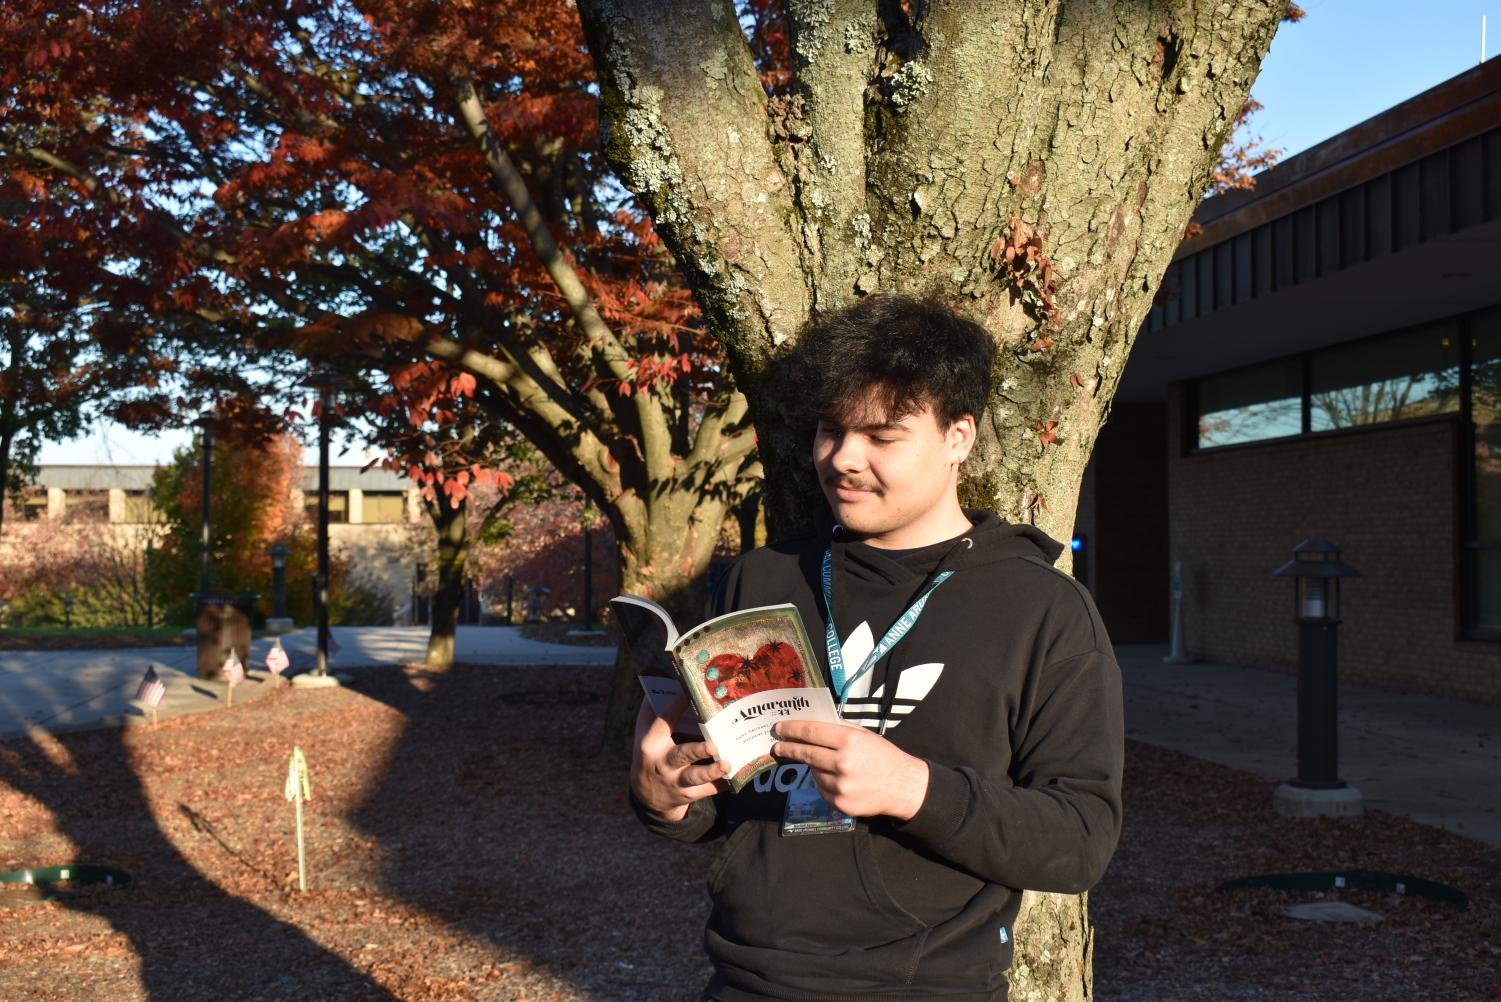 Amaranth Editor-in-Chief Mitchell Santos reads the issue of the literary magazine that won the Pacemaker Award this November.